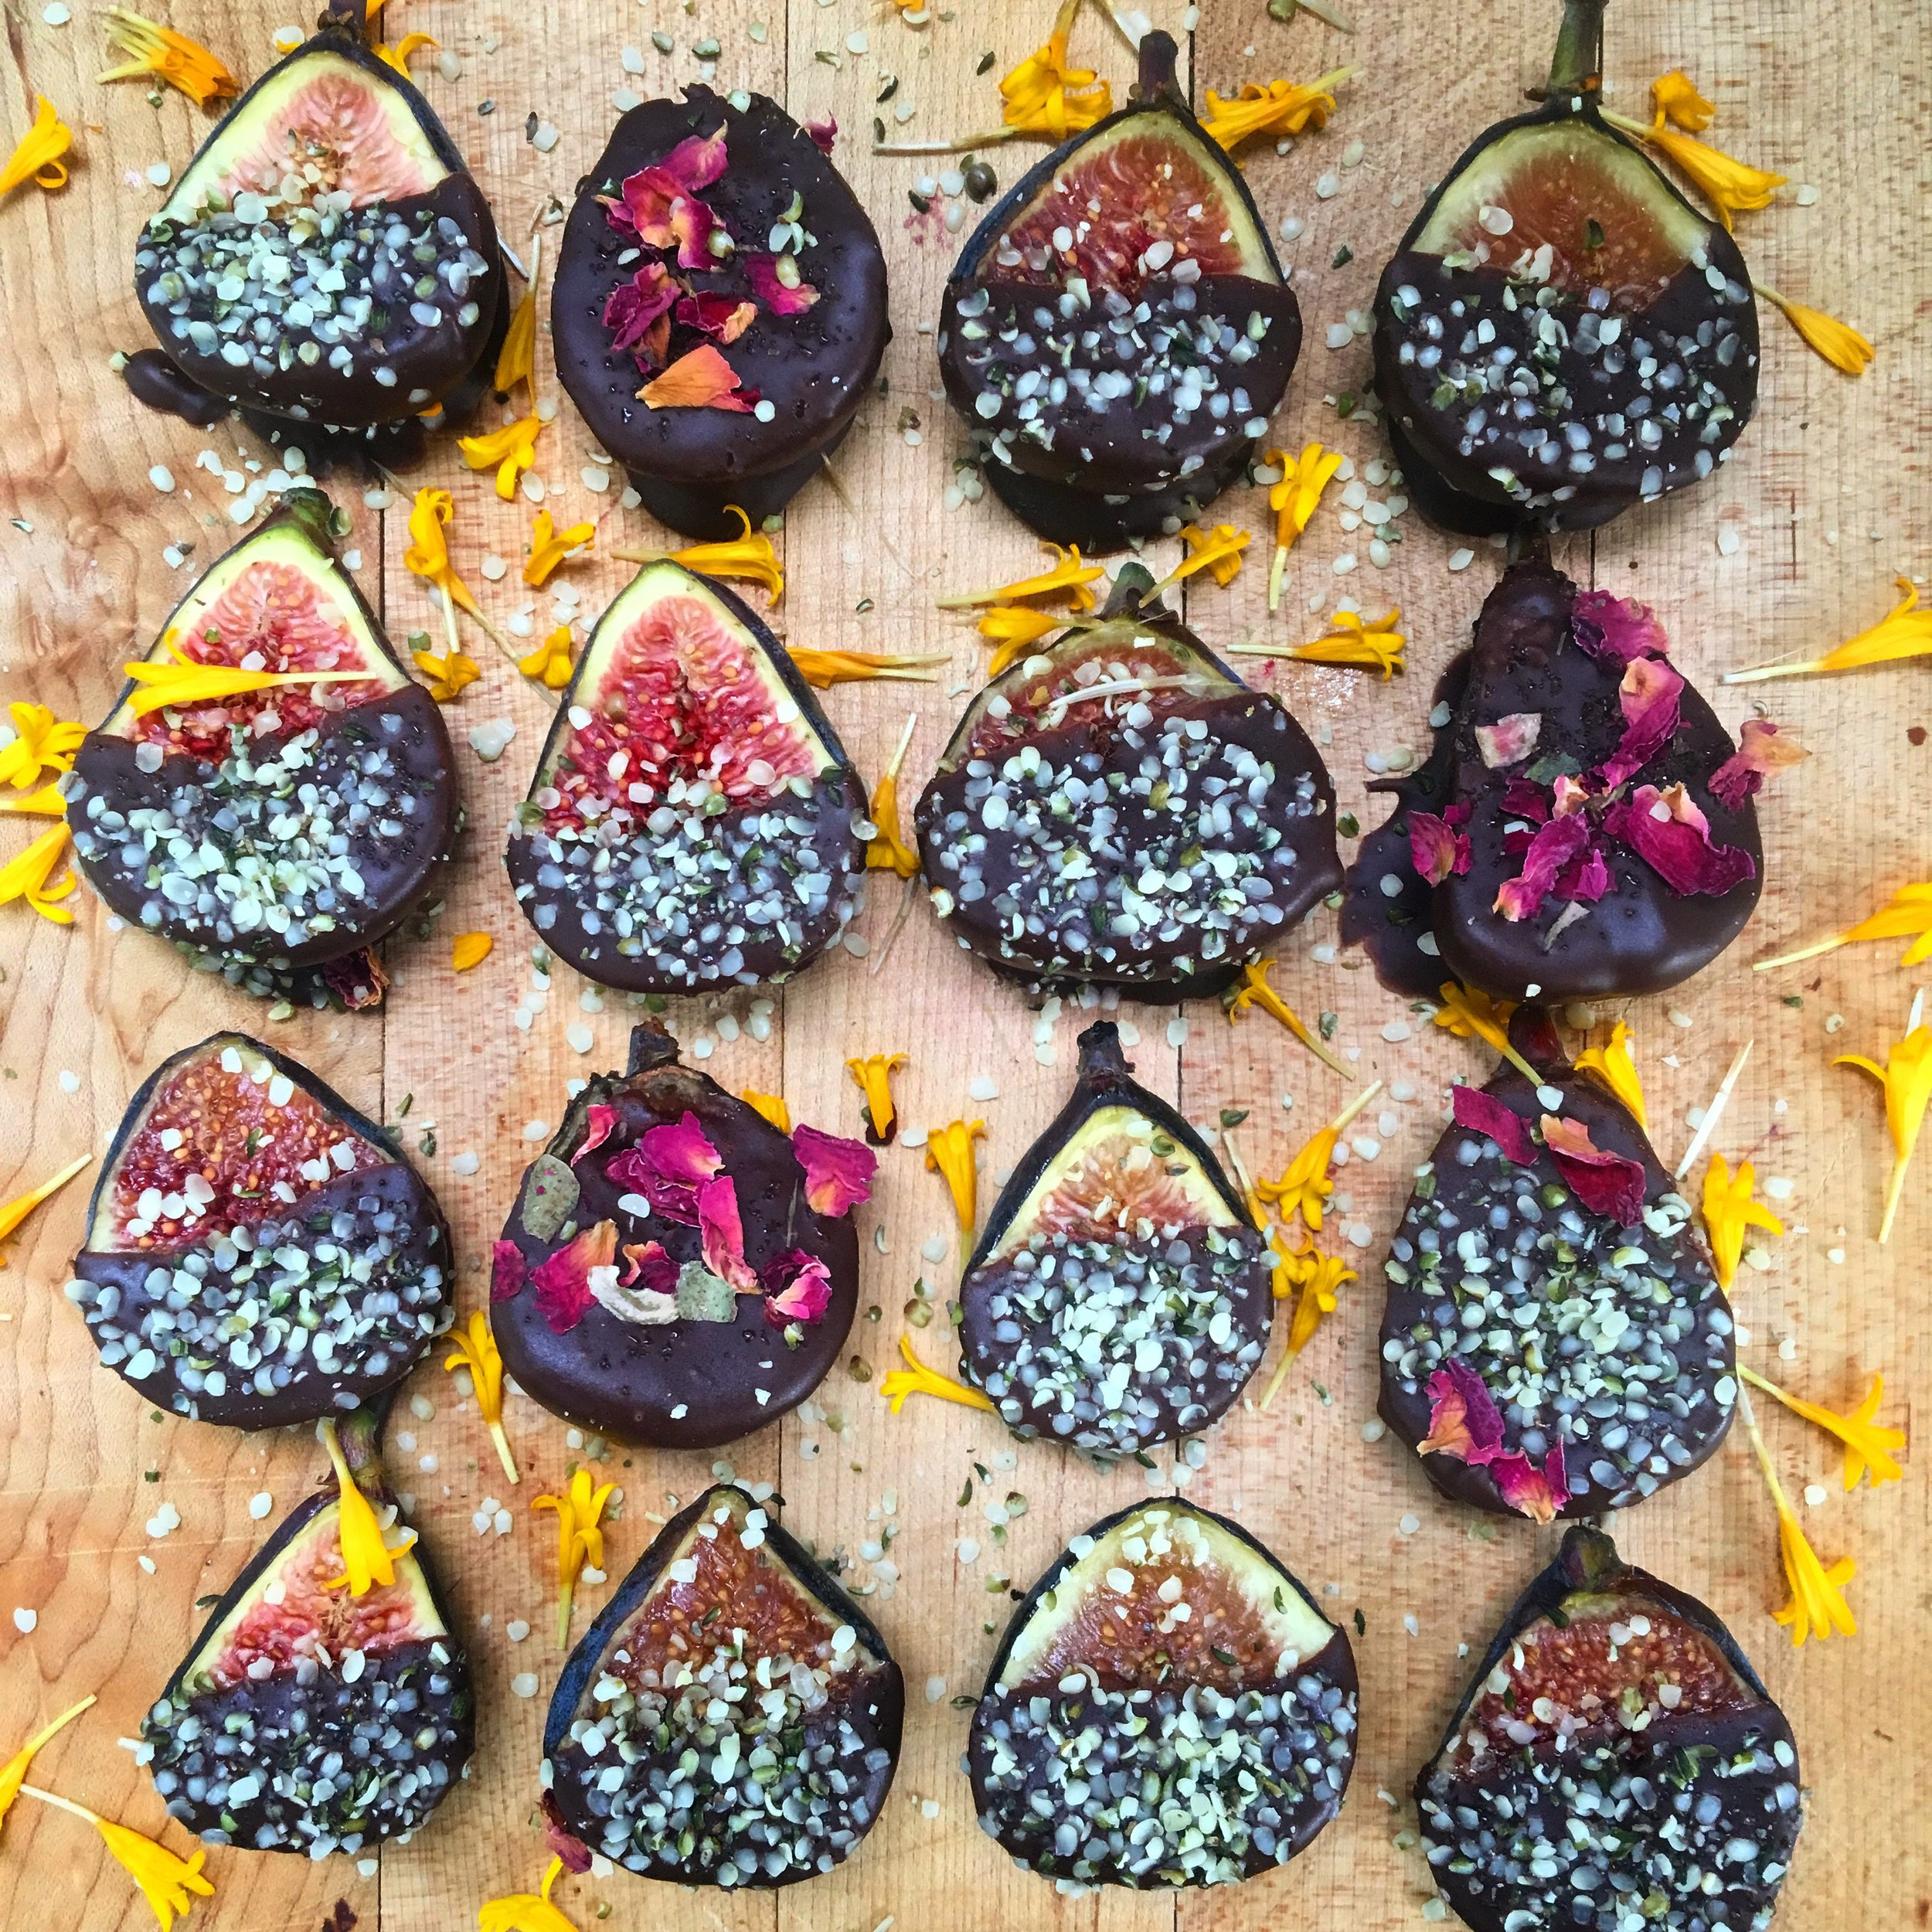 Chocolate Covered Figs with Hemp Hearts